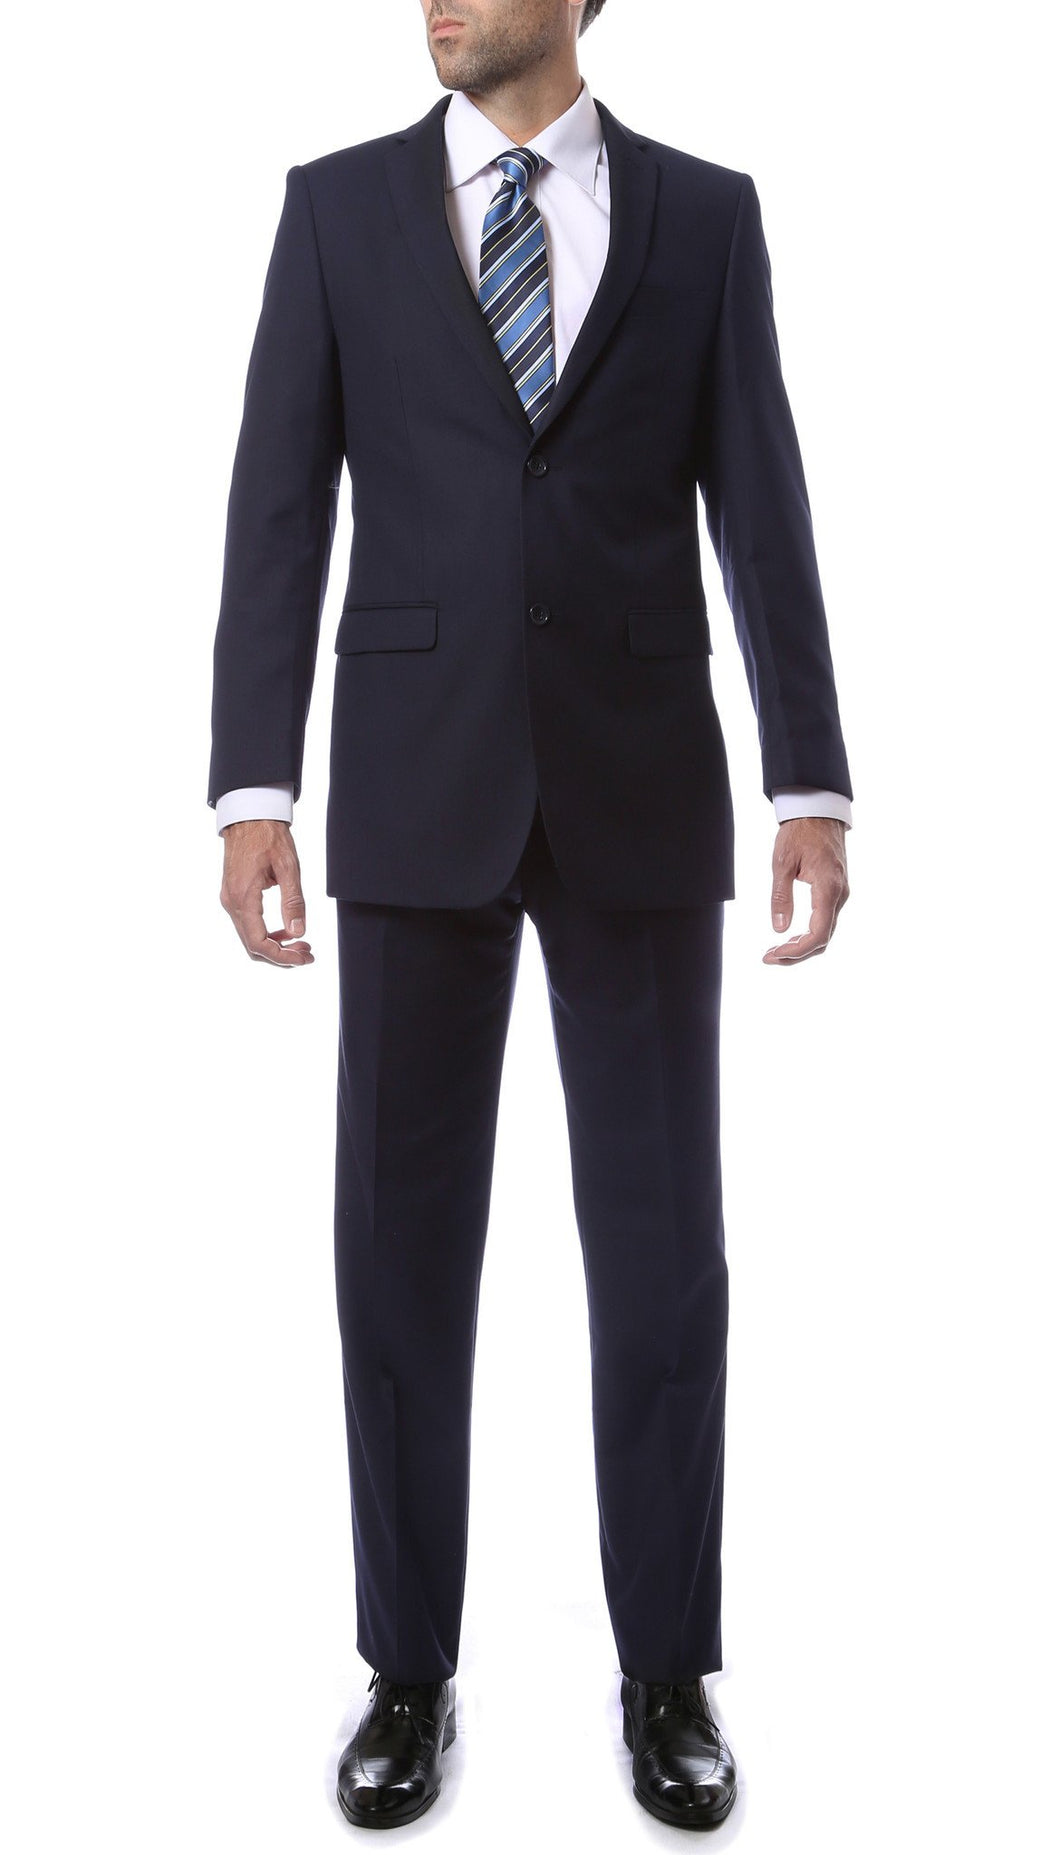 Mens 2 Button Navy Blue Regular Fit Suit - Ferrecci USA